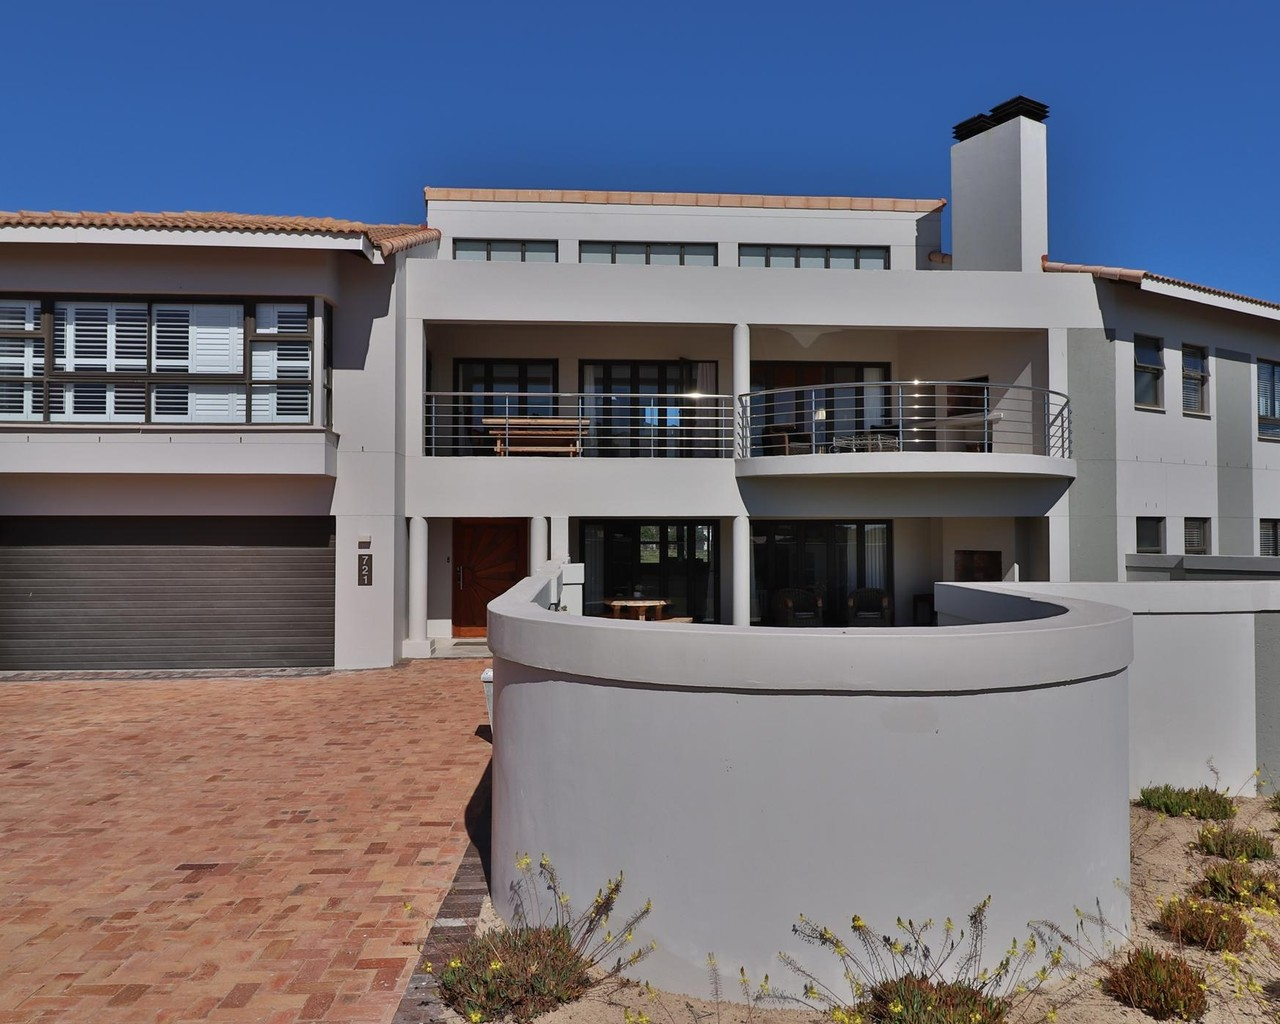 4 Bedroom House For Sale in Langebaan Country Estate | InfoProp